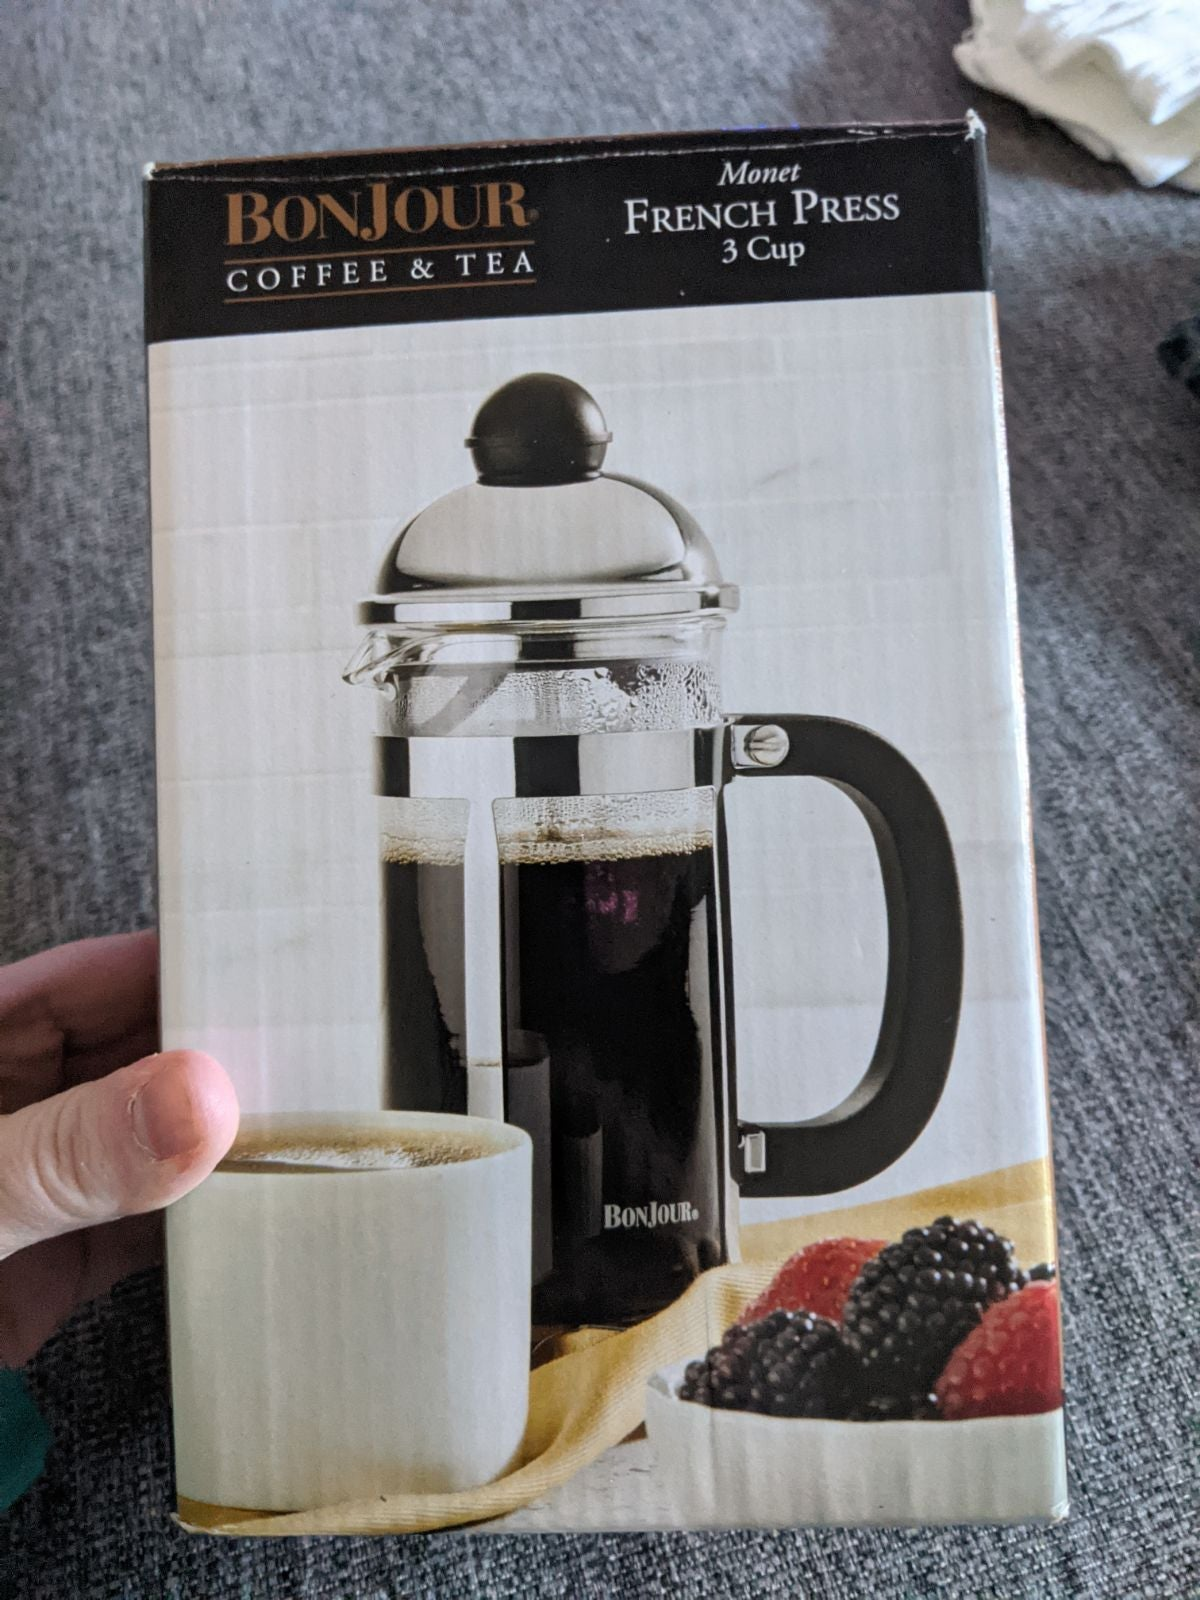 Bonjour coffee/tea 3 cup french press